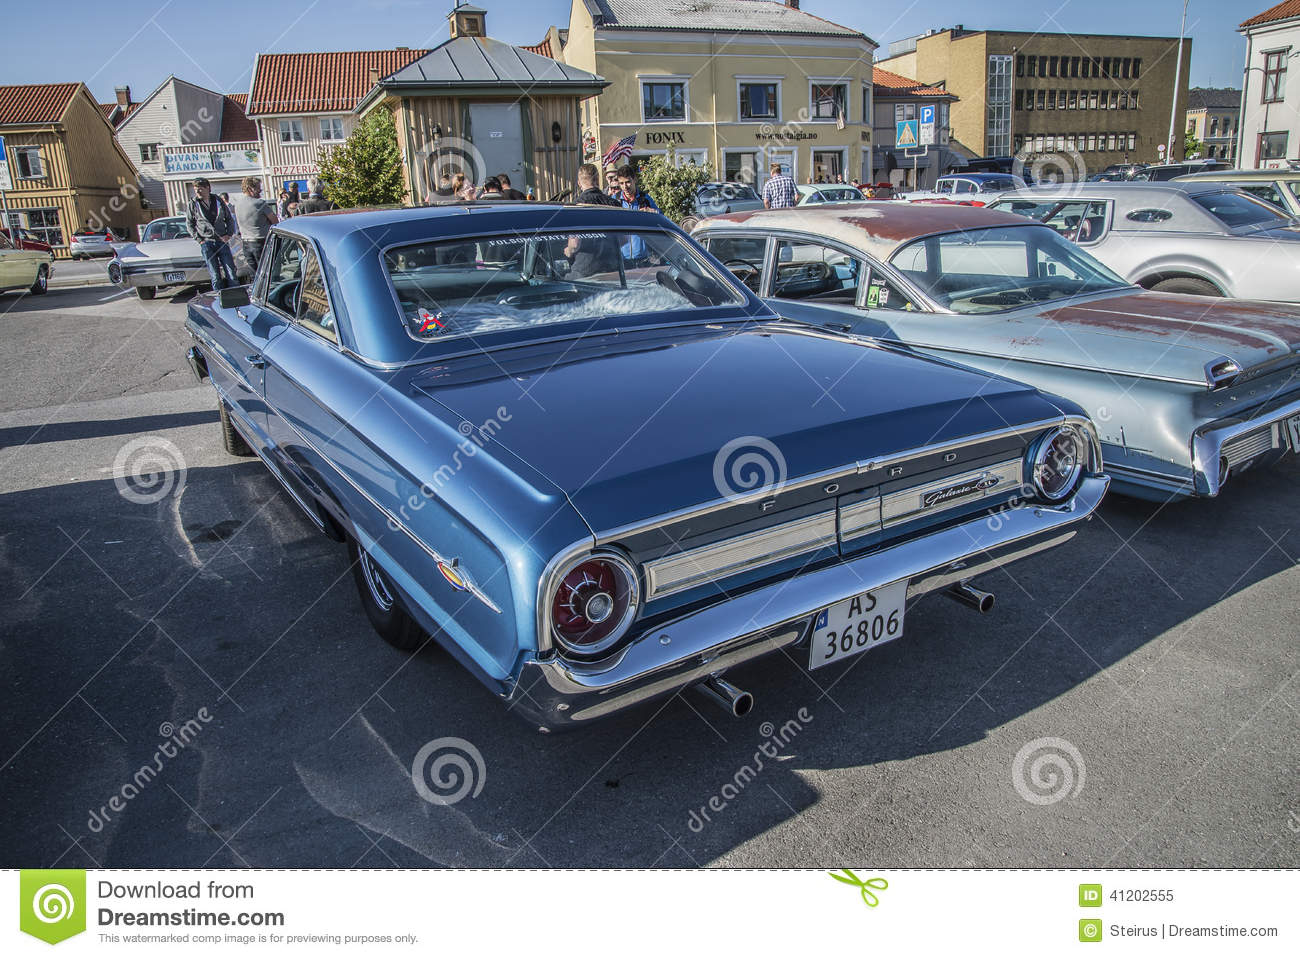 1964 Ford Galaxie 500 Xl 2-door Hardtop Editorial Image - Image of ...